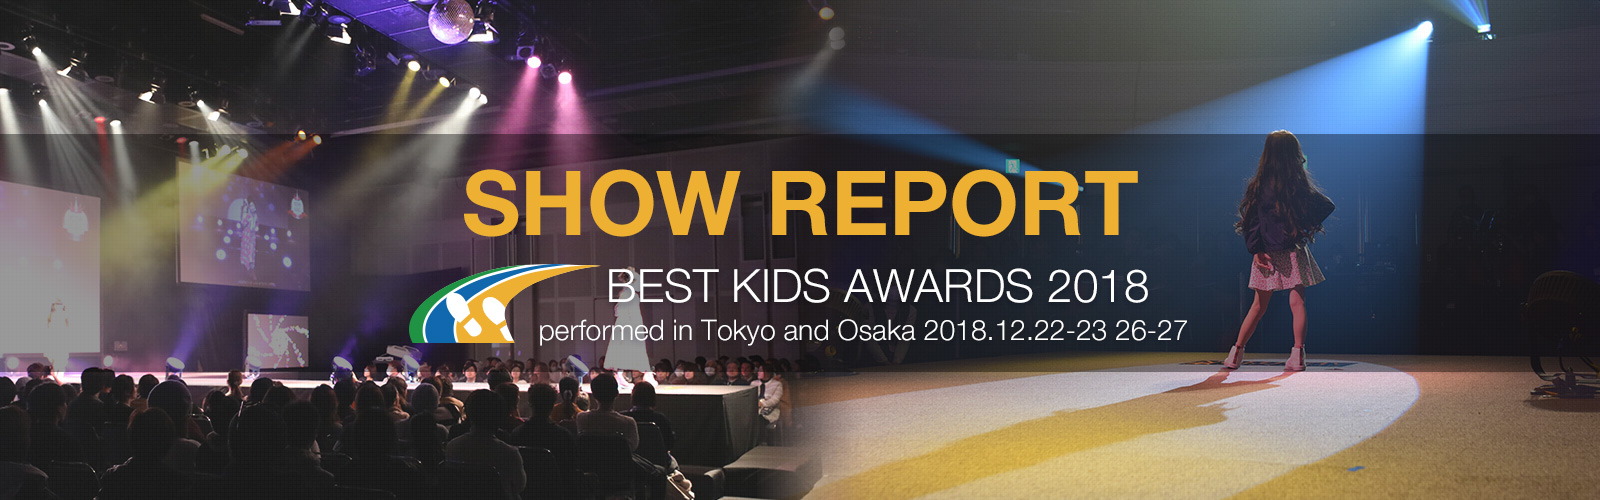 BEST KIDS AWARDS 2018 開催レポート